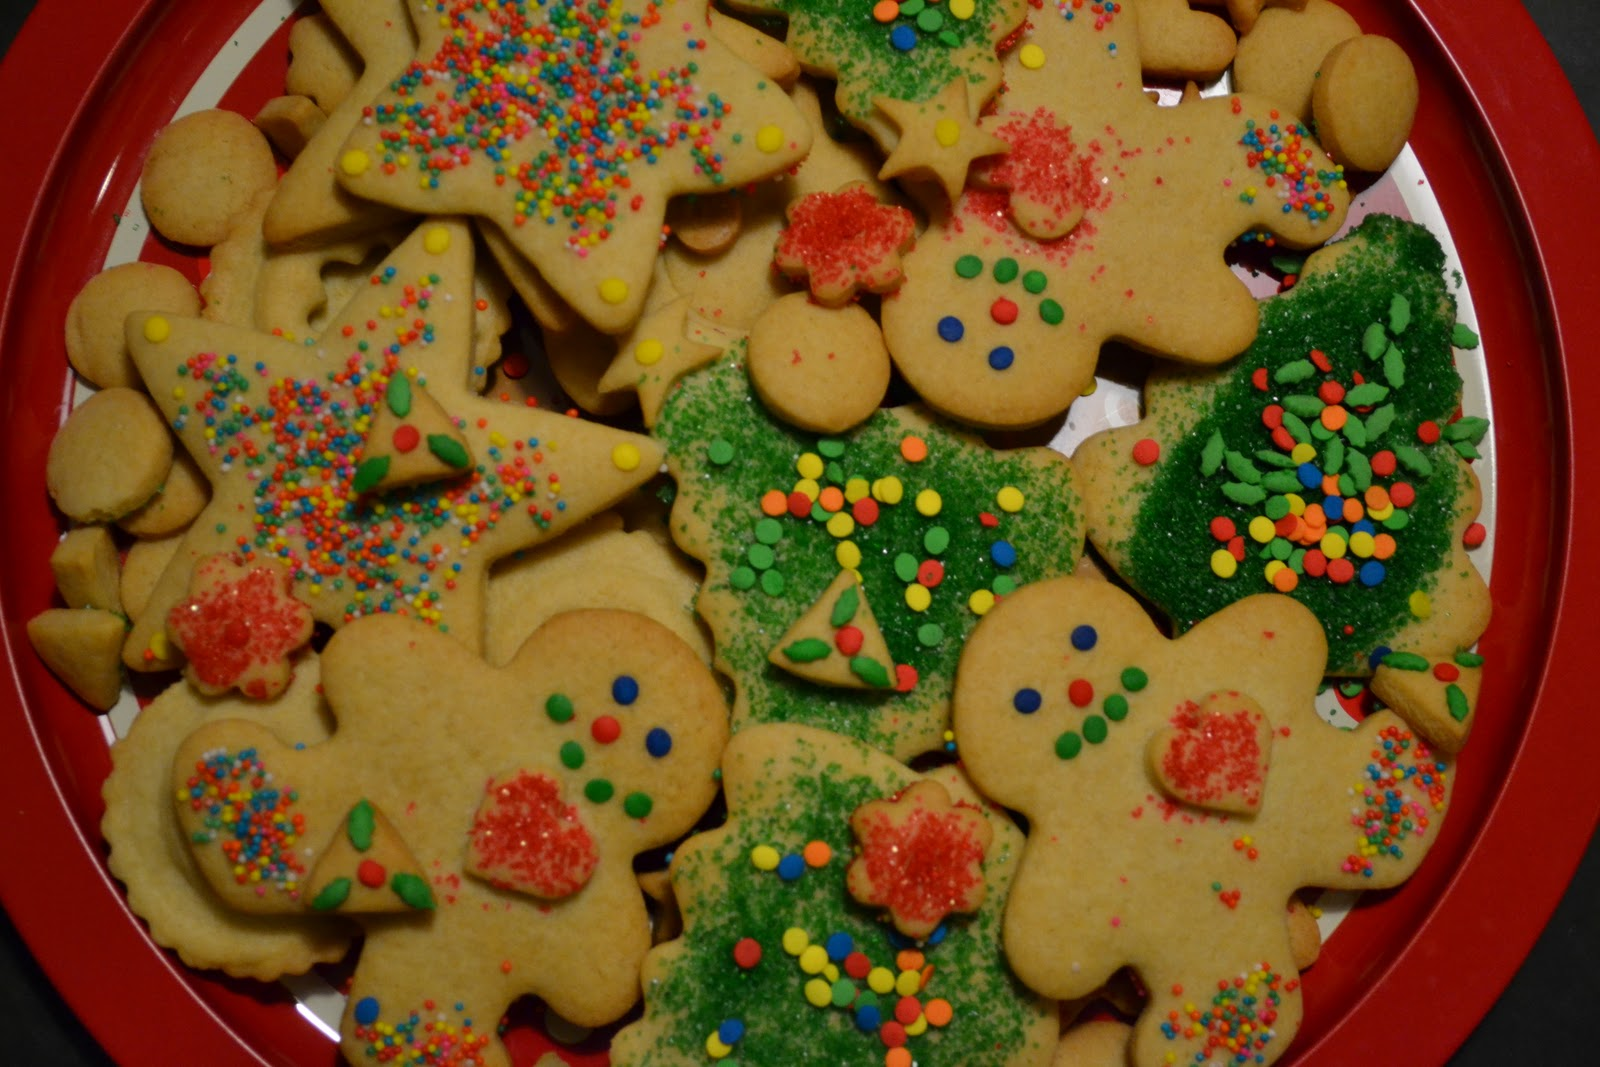 The Joy Of Baking Merrymaking Christmas Cookies Other Fun